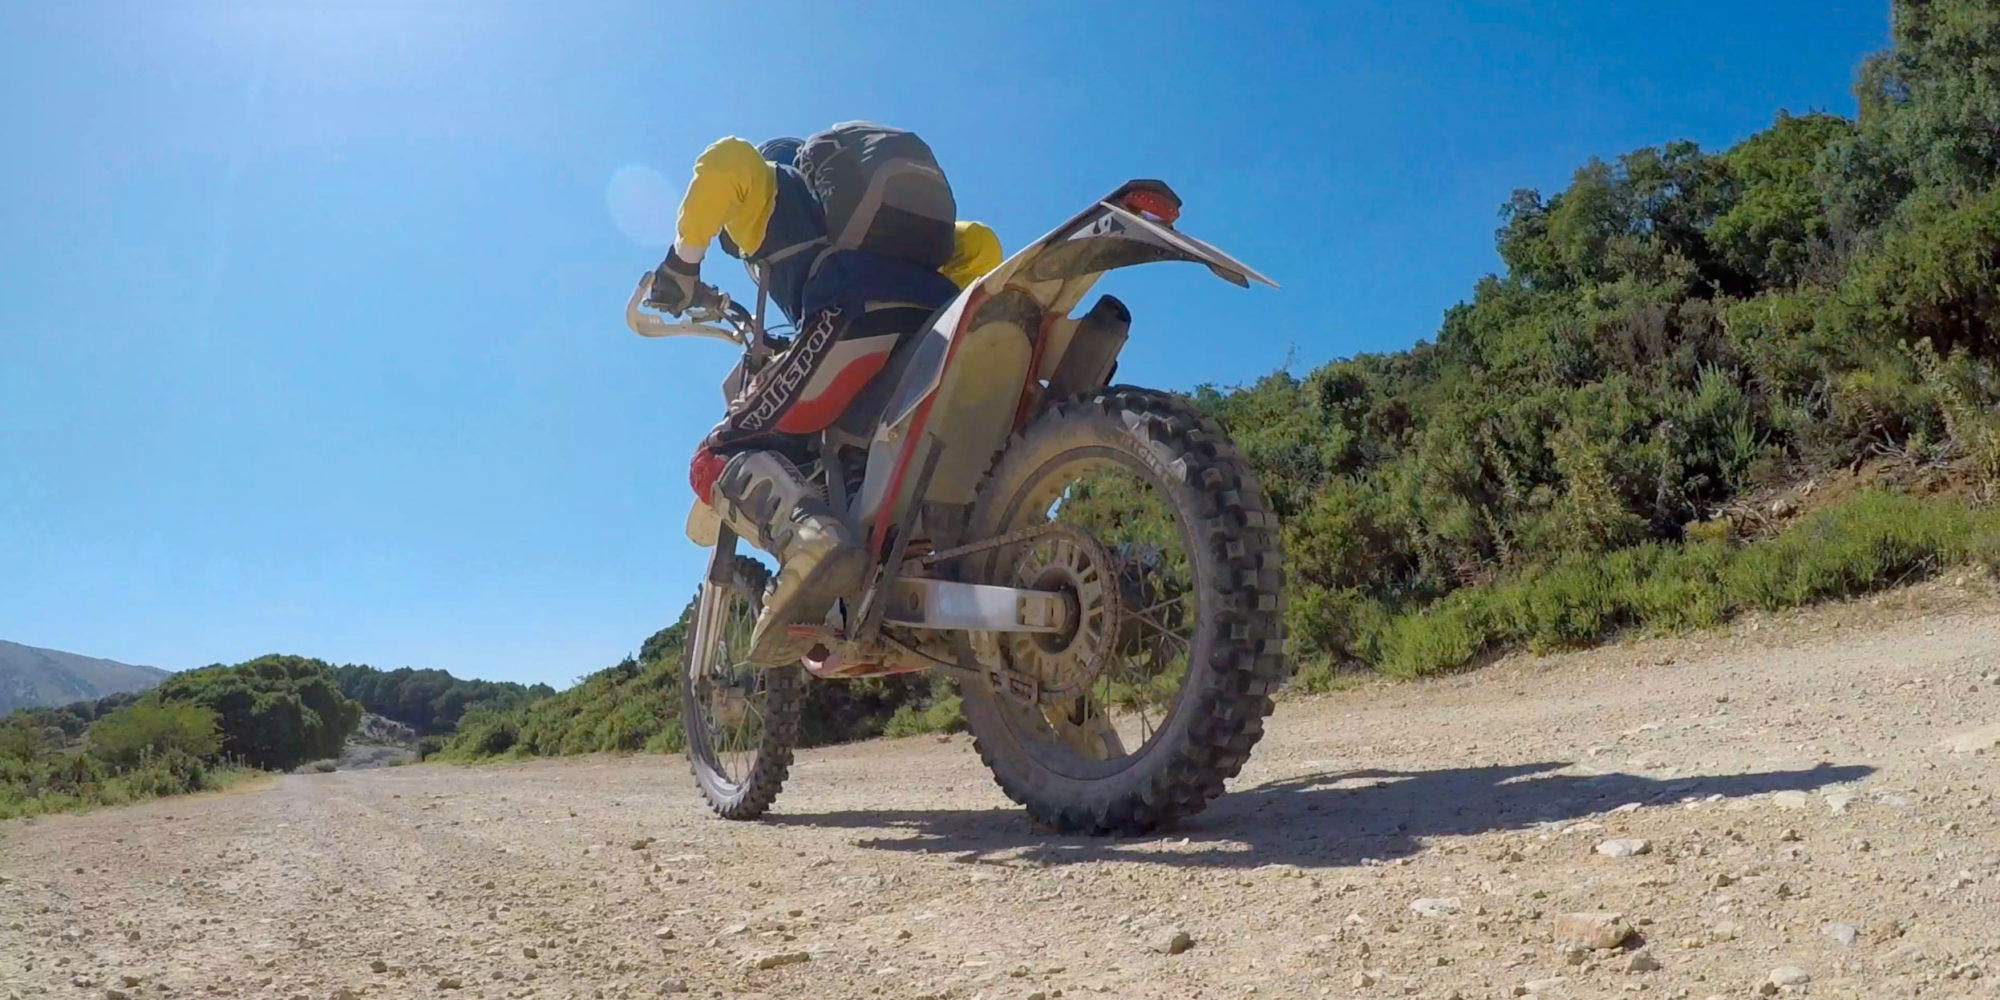 trail riding through miles of dirt roads, winding through mountain pass, ride through rock tunnels, traversing canyons and amazing rock formations in Spain